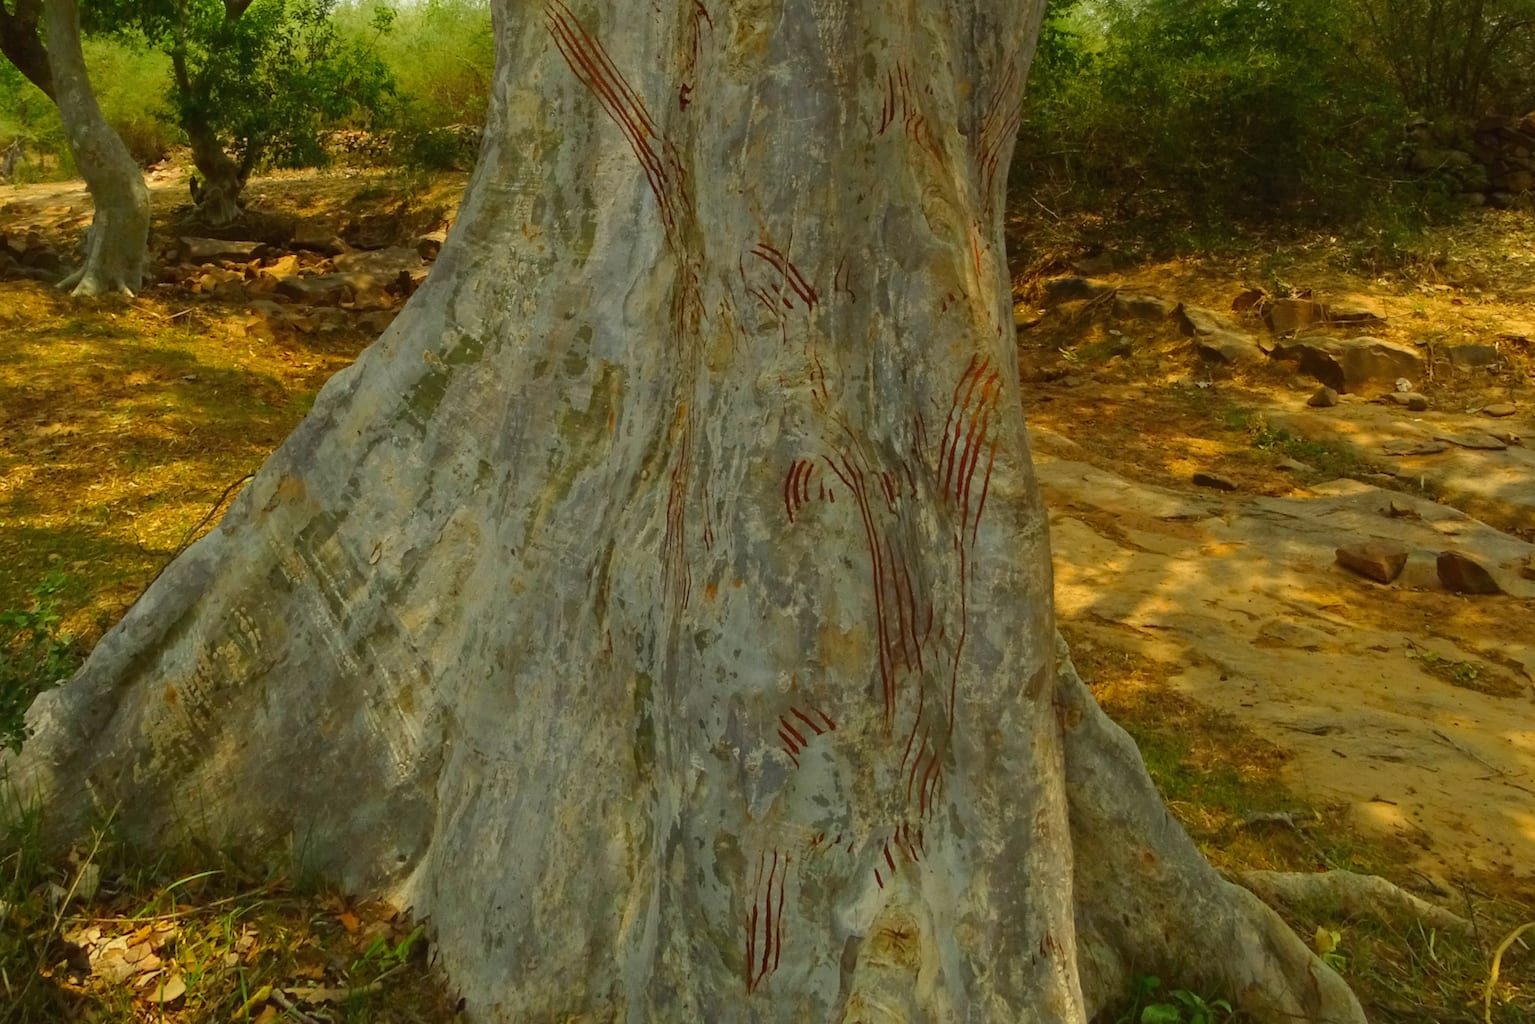 Close up of scratch marks made by a sloth bear while climbing